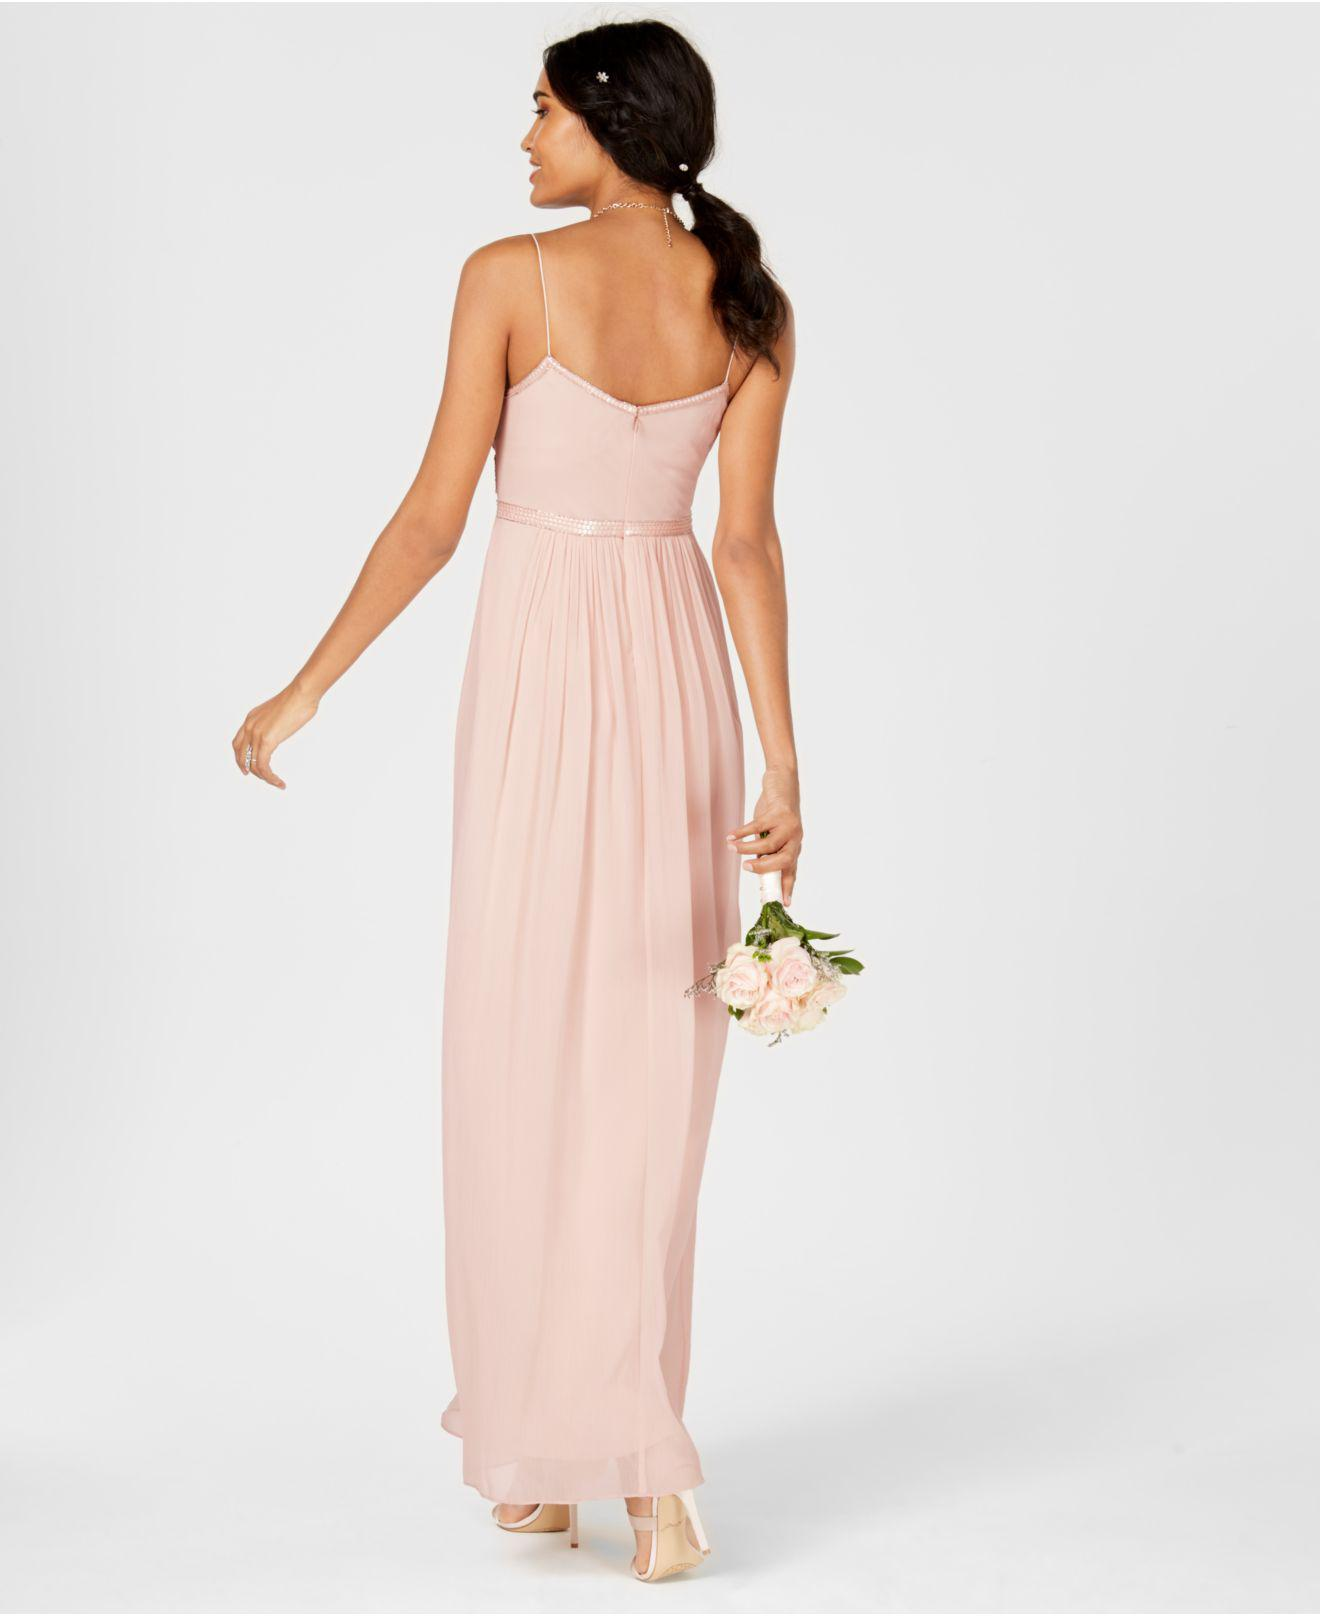 822ae24c9b Lyst - Adrianna Papell Beaded Chiffon Gown in Pink - Save 17%